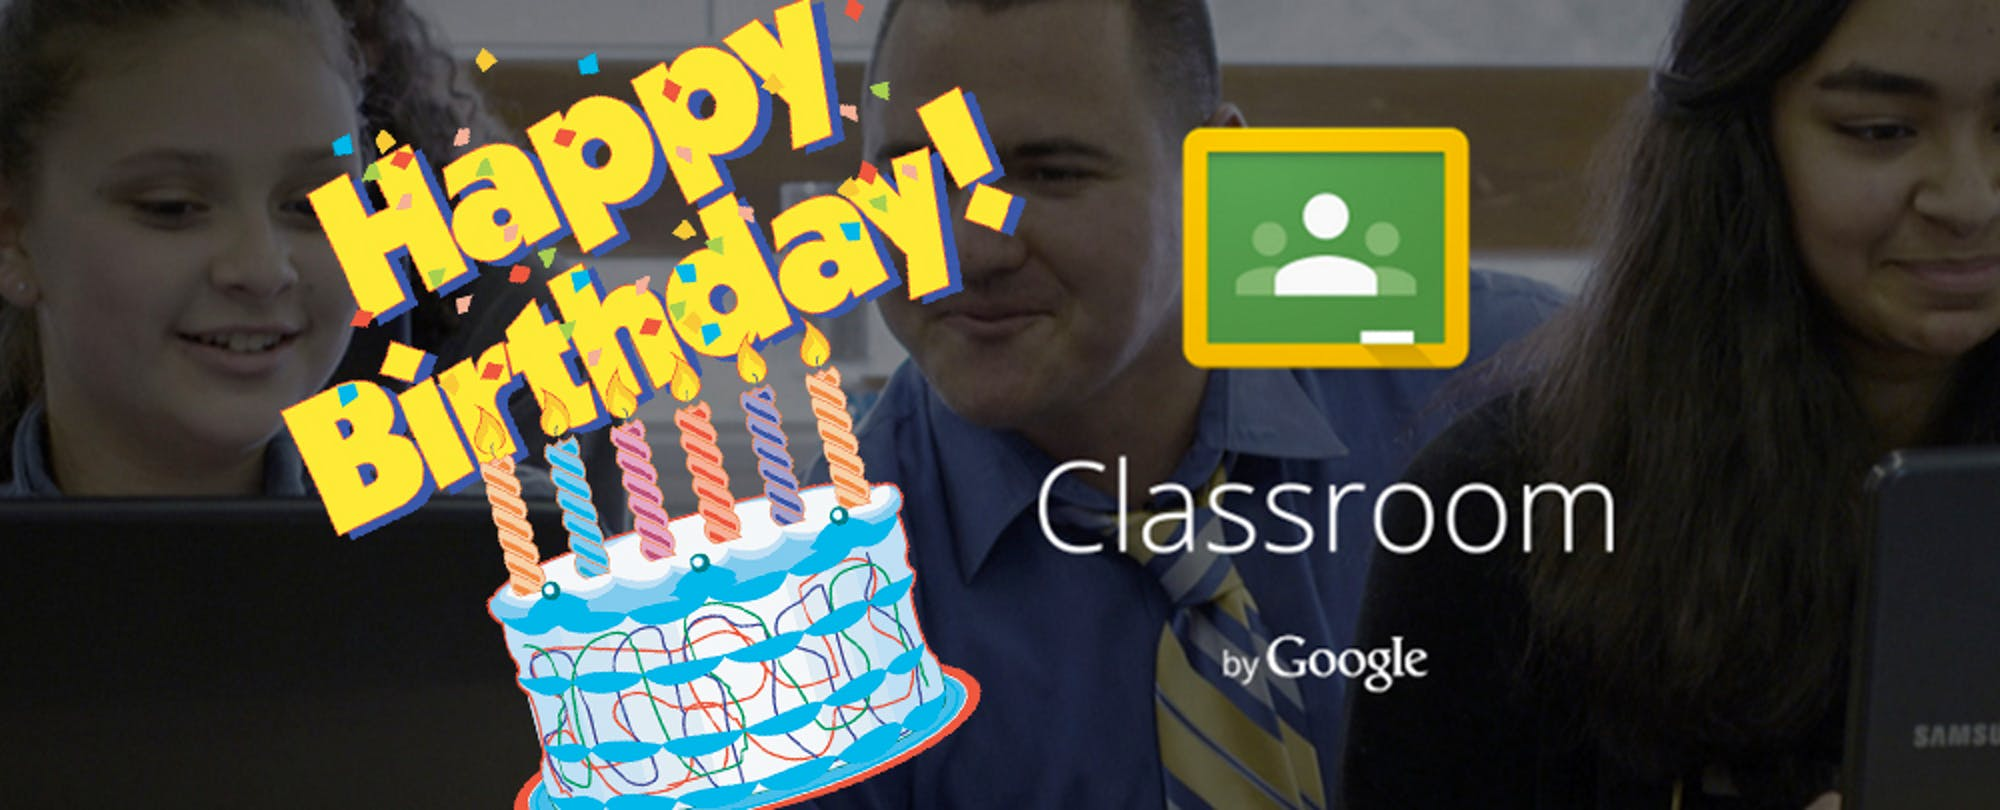 Google Classroom Celebrates One-Year Anniversary With New Features for Teachers